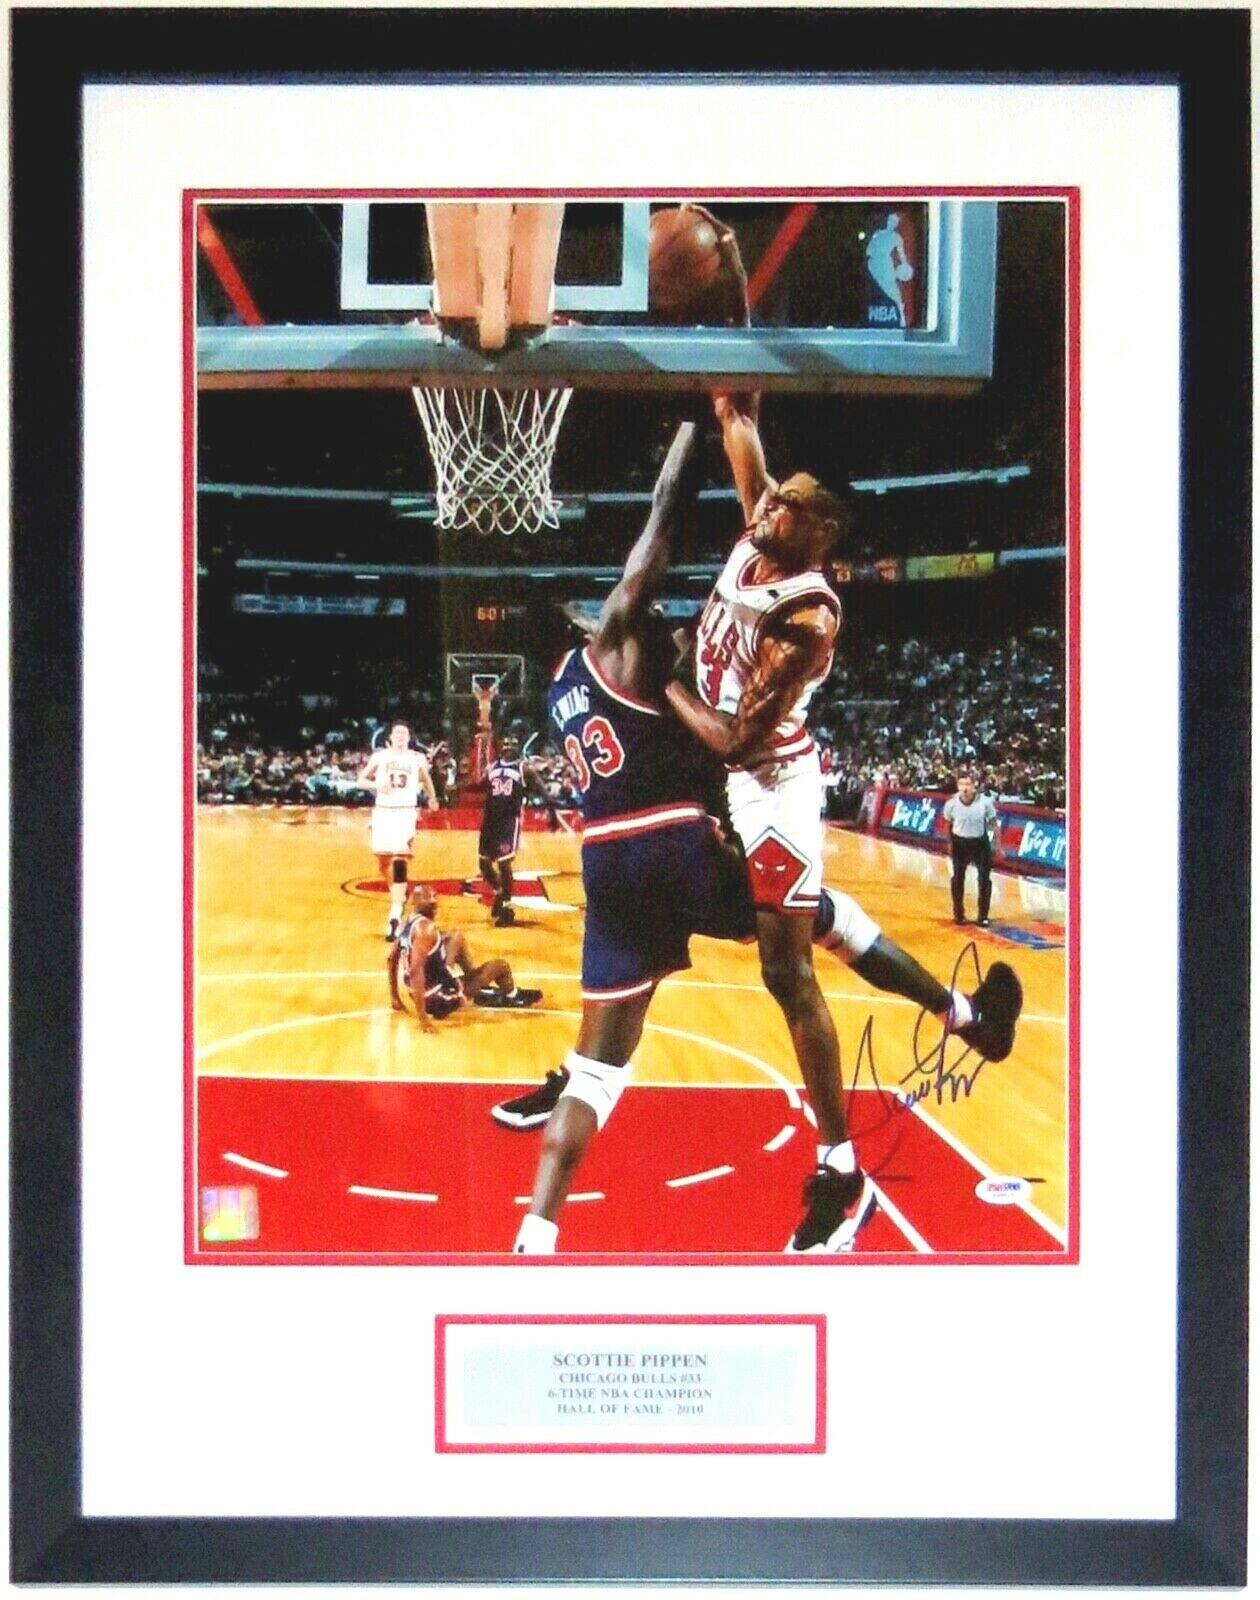 418f8c07964 Scottie Pippen 1994 NBA Playoffs 16x20 Photo PSA DNA COA Authenticated -  Professionally Framed &